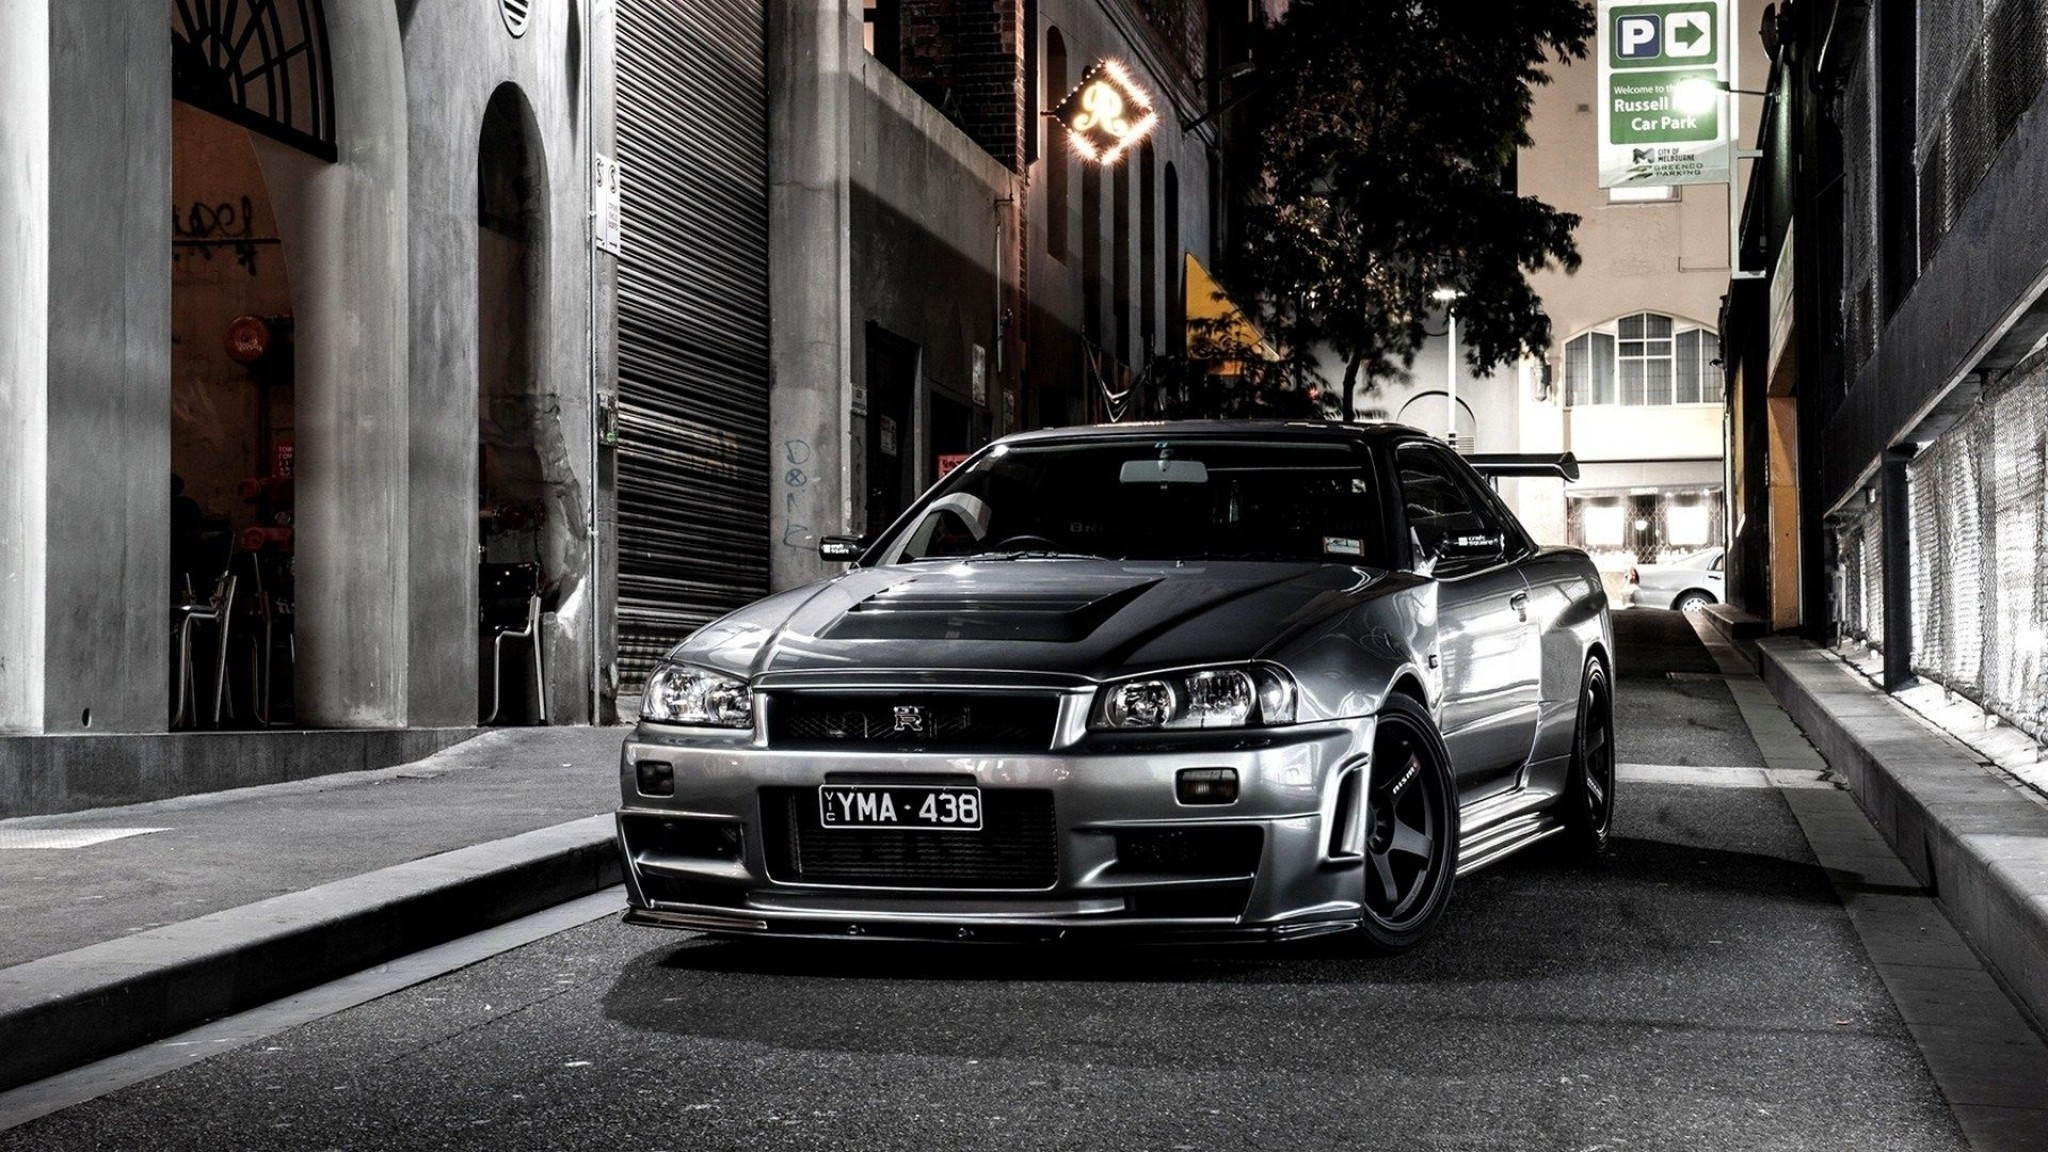 2048x1152 Nissan, Skyline, Nismo, Nissan Skyline GT R R34 Nismo Z Tune, Nissan  Skyline GT R R34 Wallpapers HD / Desktop and Mobile Backgrounds